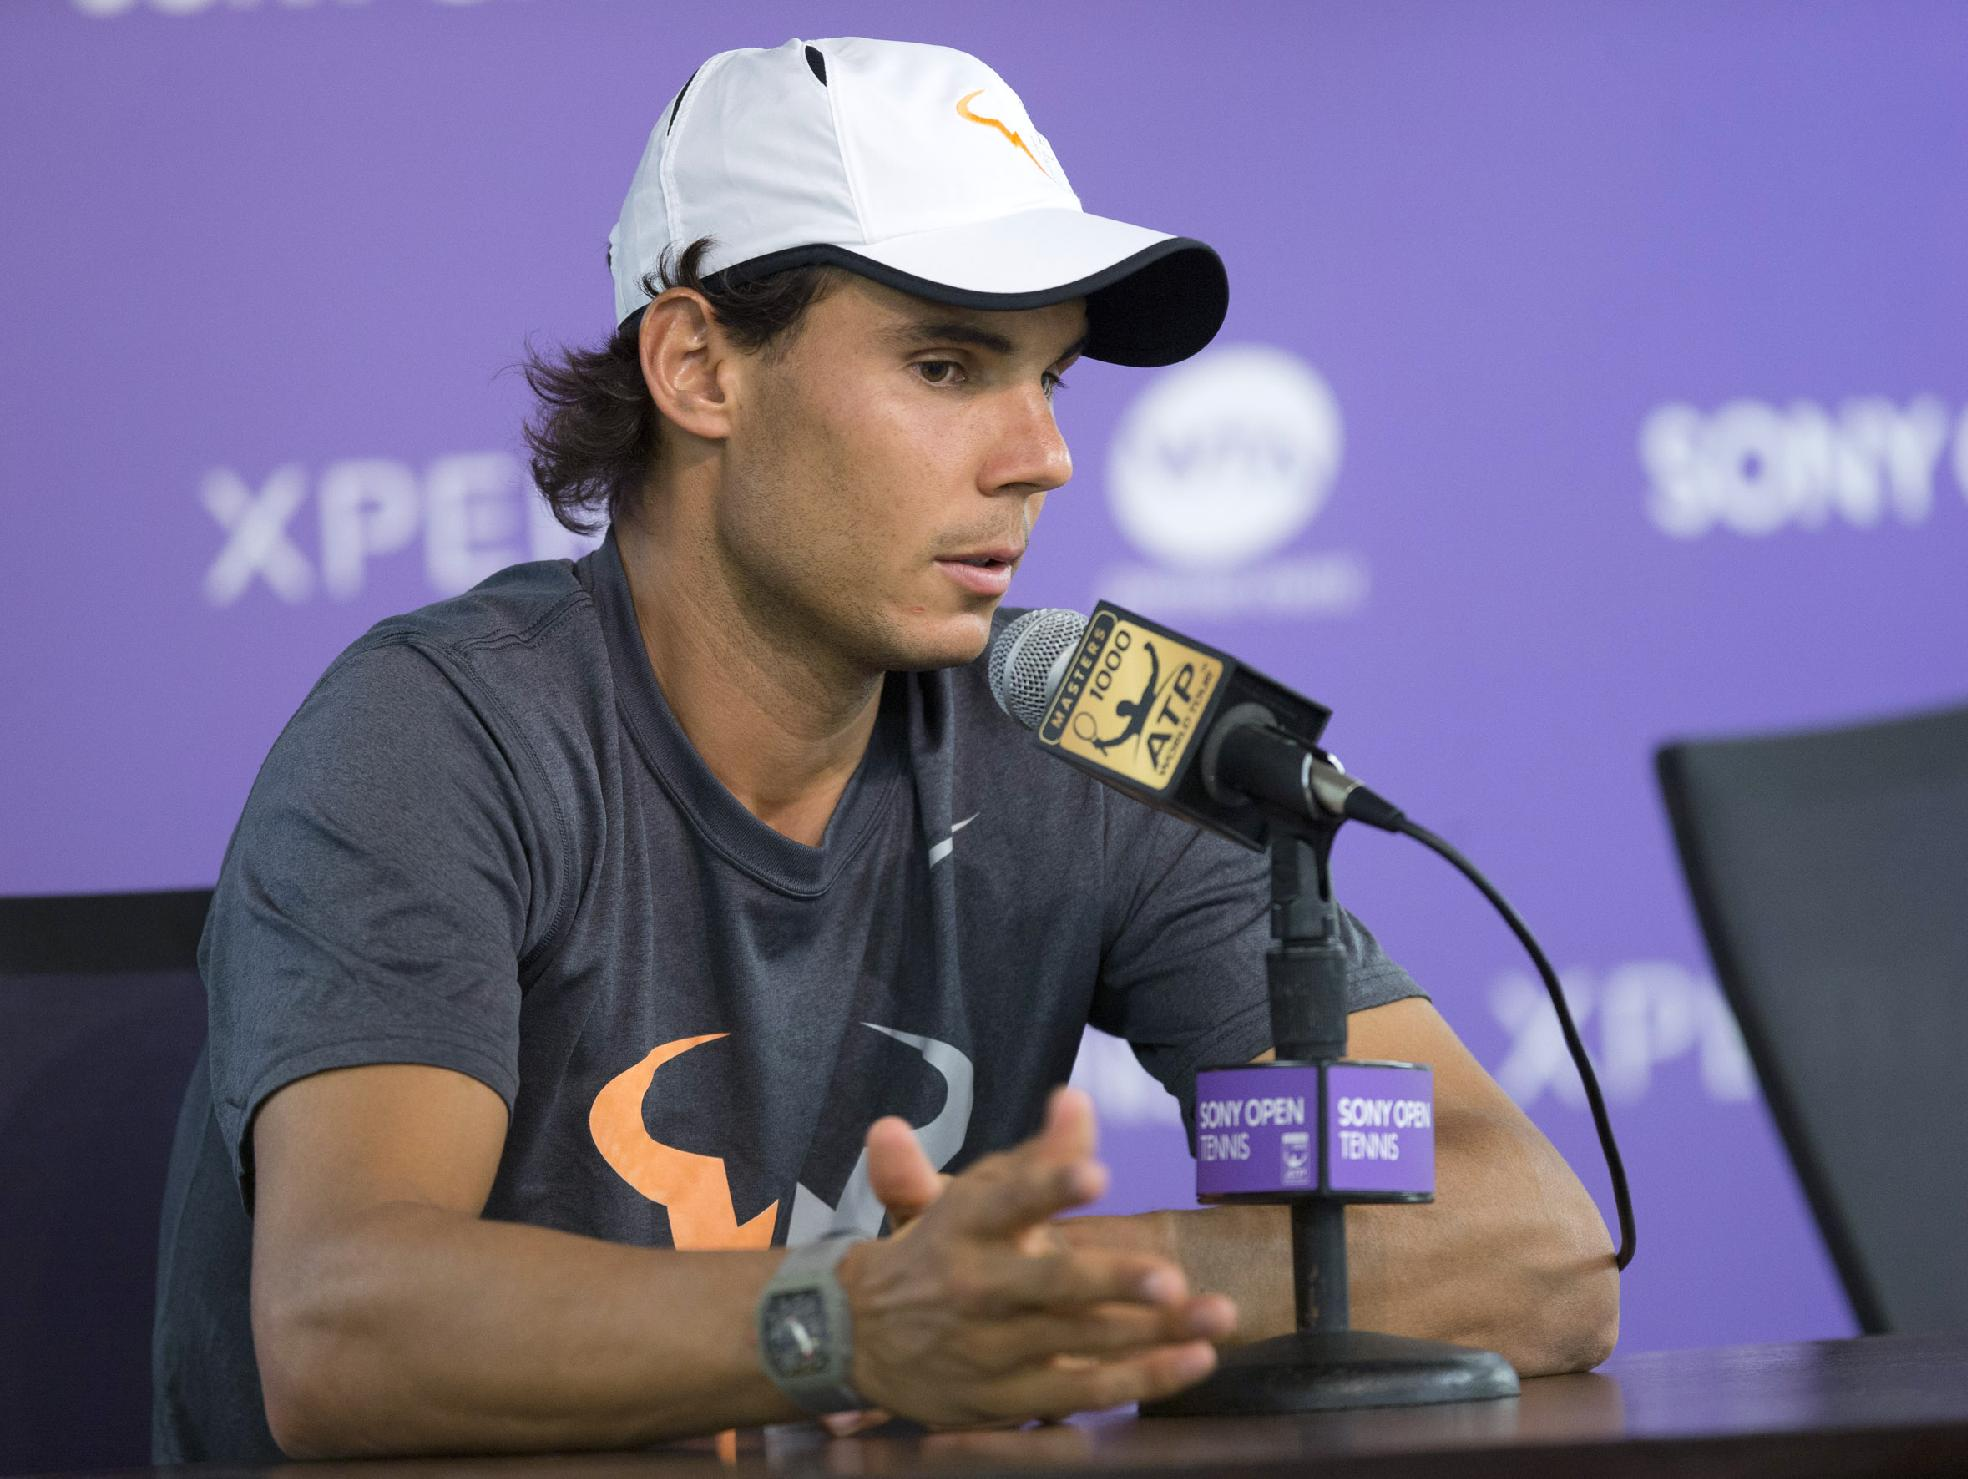 Rafeal Nadal, of Spain, talks to reporters at the Sony Open tennis tournament in Key Biscayne, Fla., Friday, March 28, 2014, after Tomas Berdych withdrew before their match for health reasons